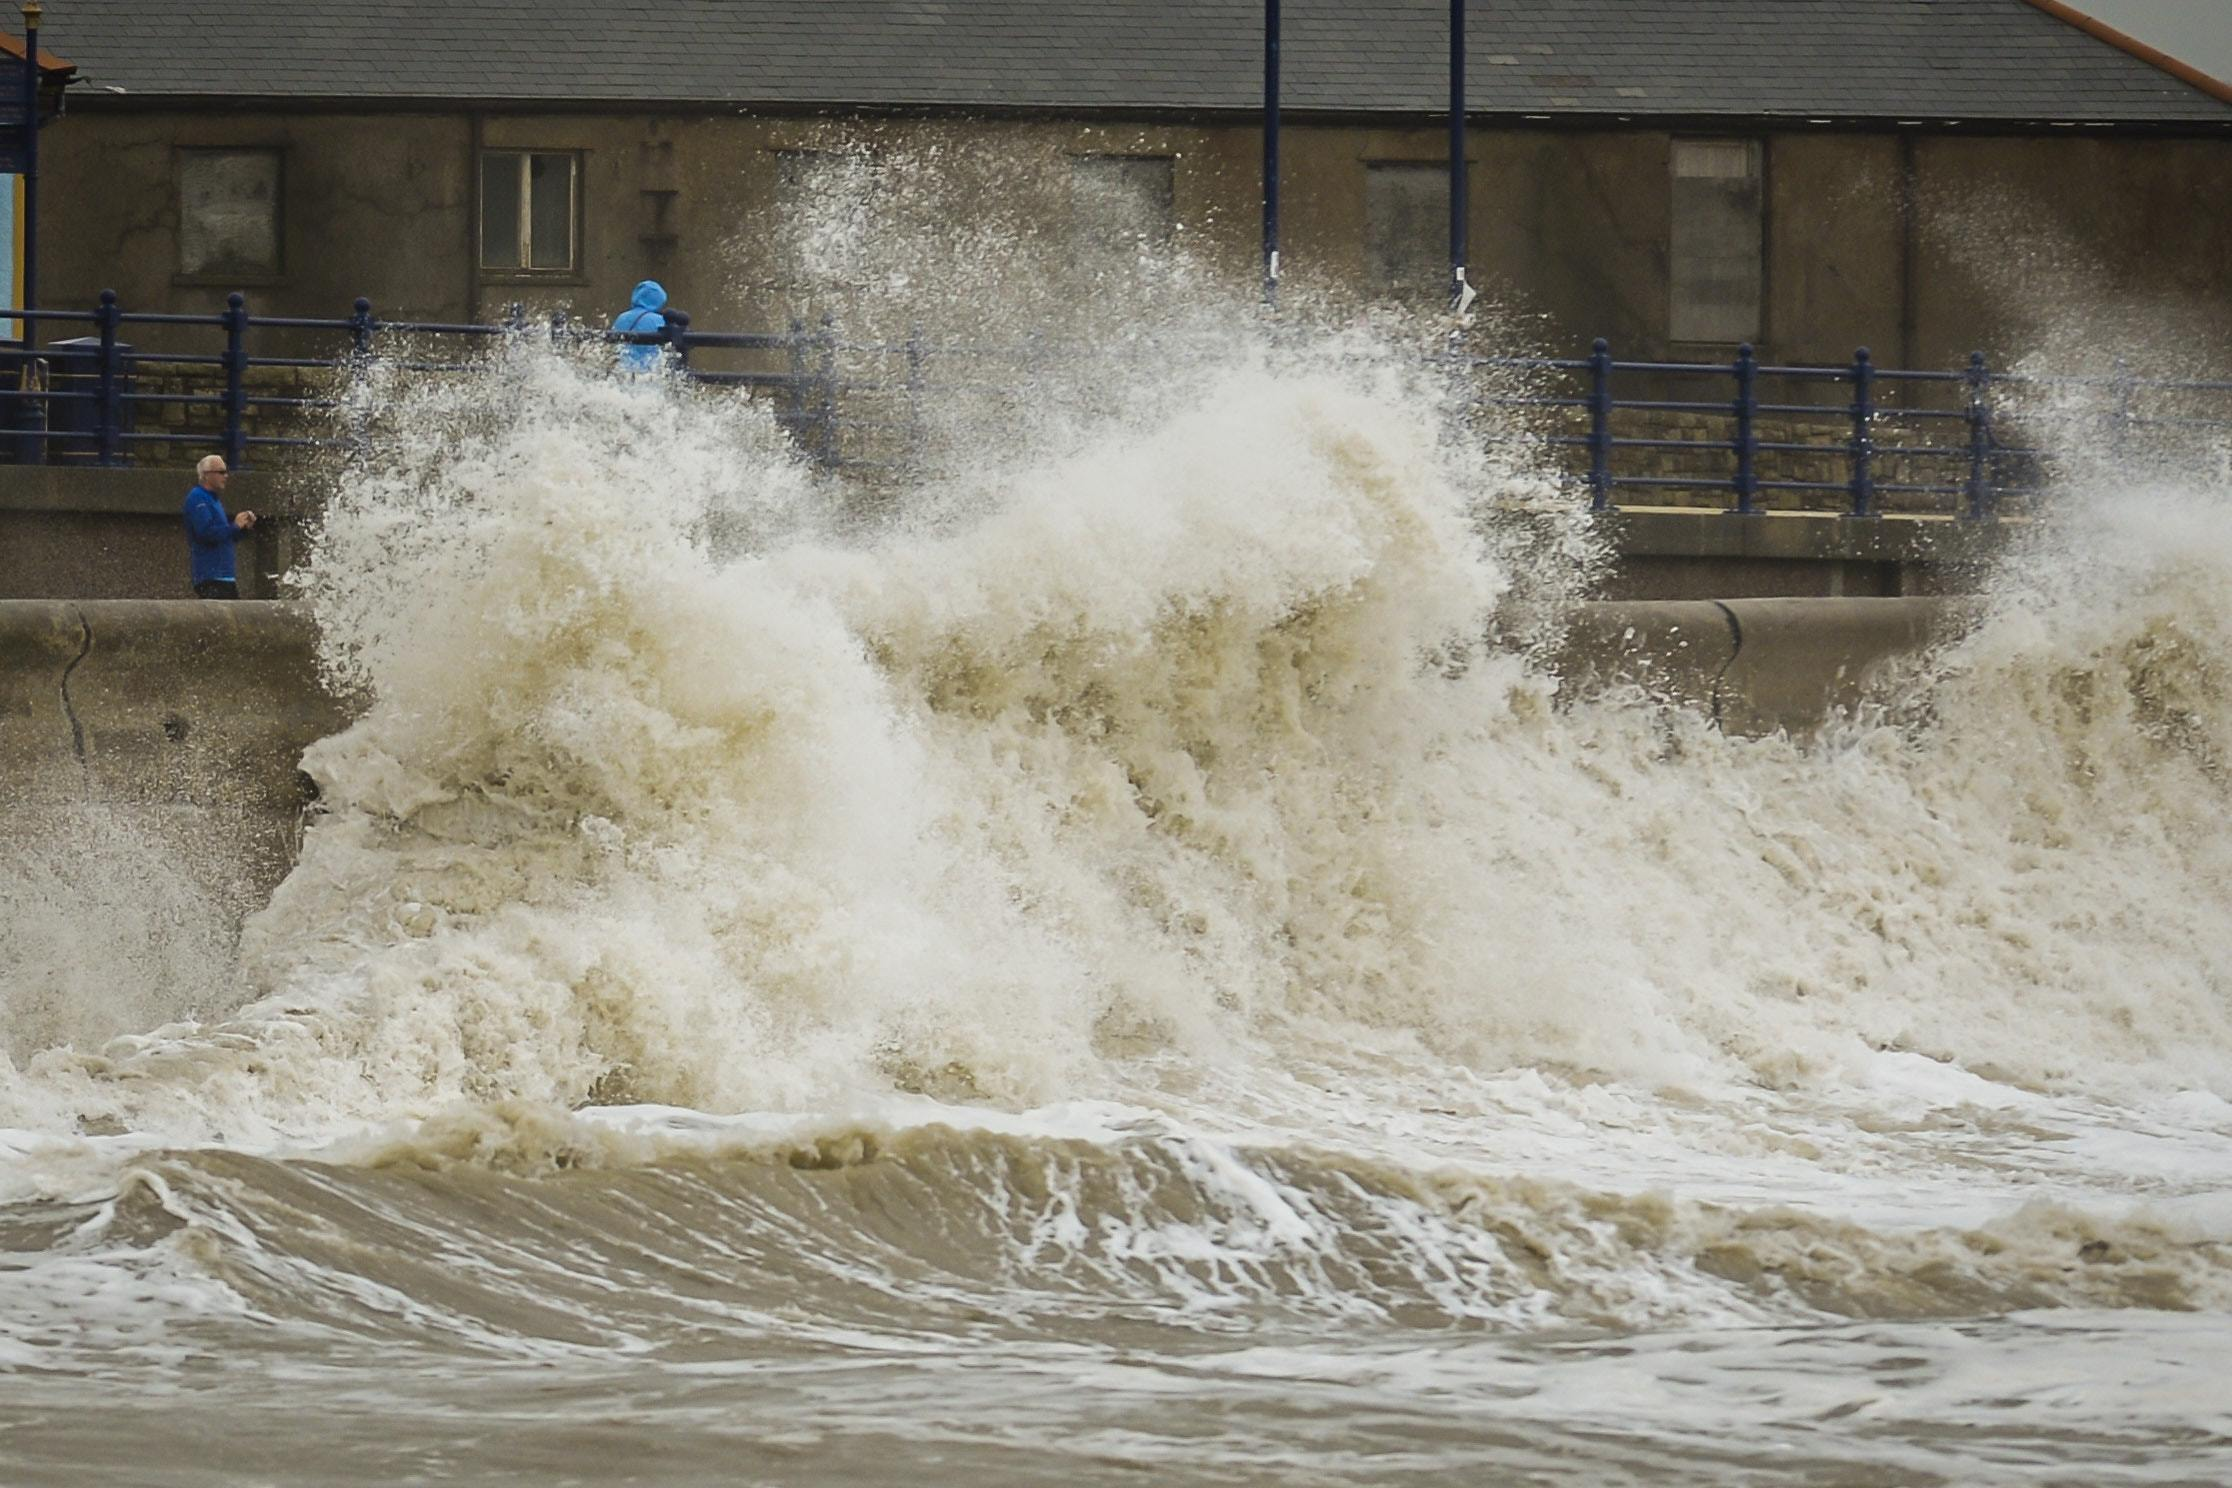 Storm Bronagh Brings Gale-Force Winds And Flooding To England And Wales